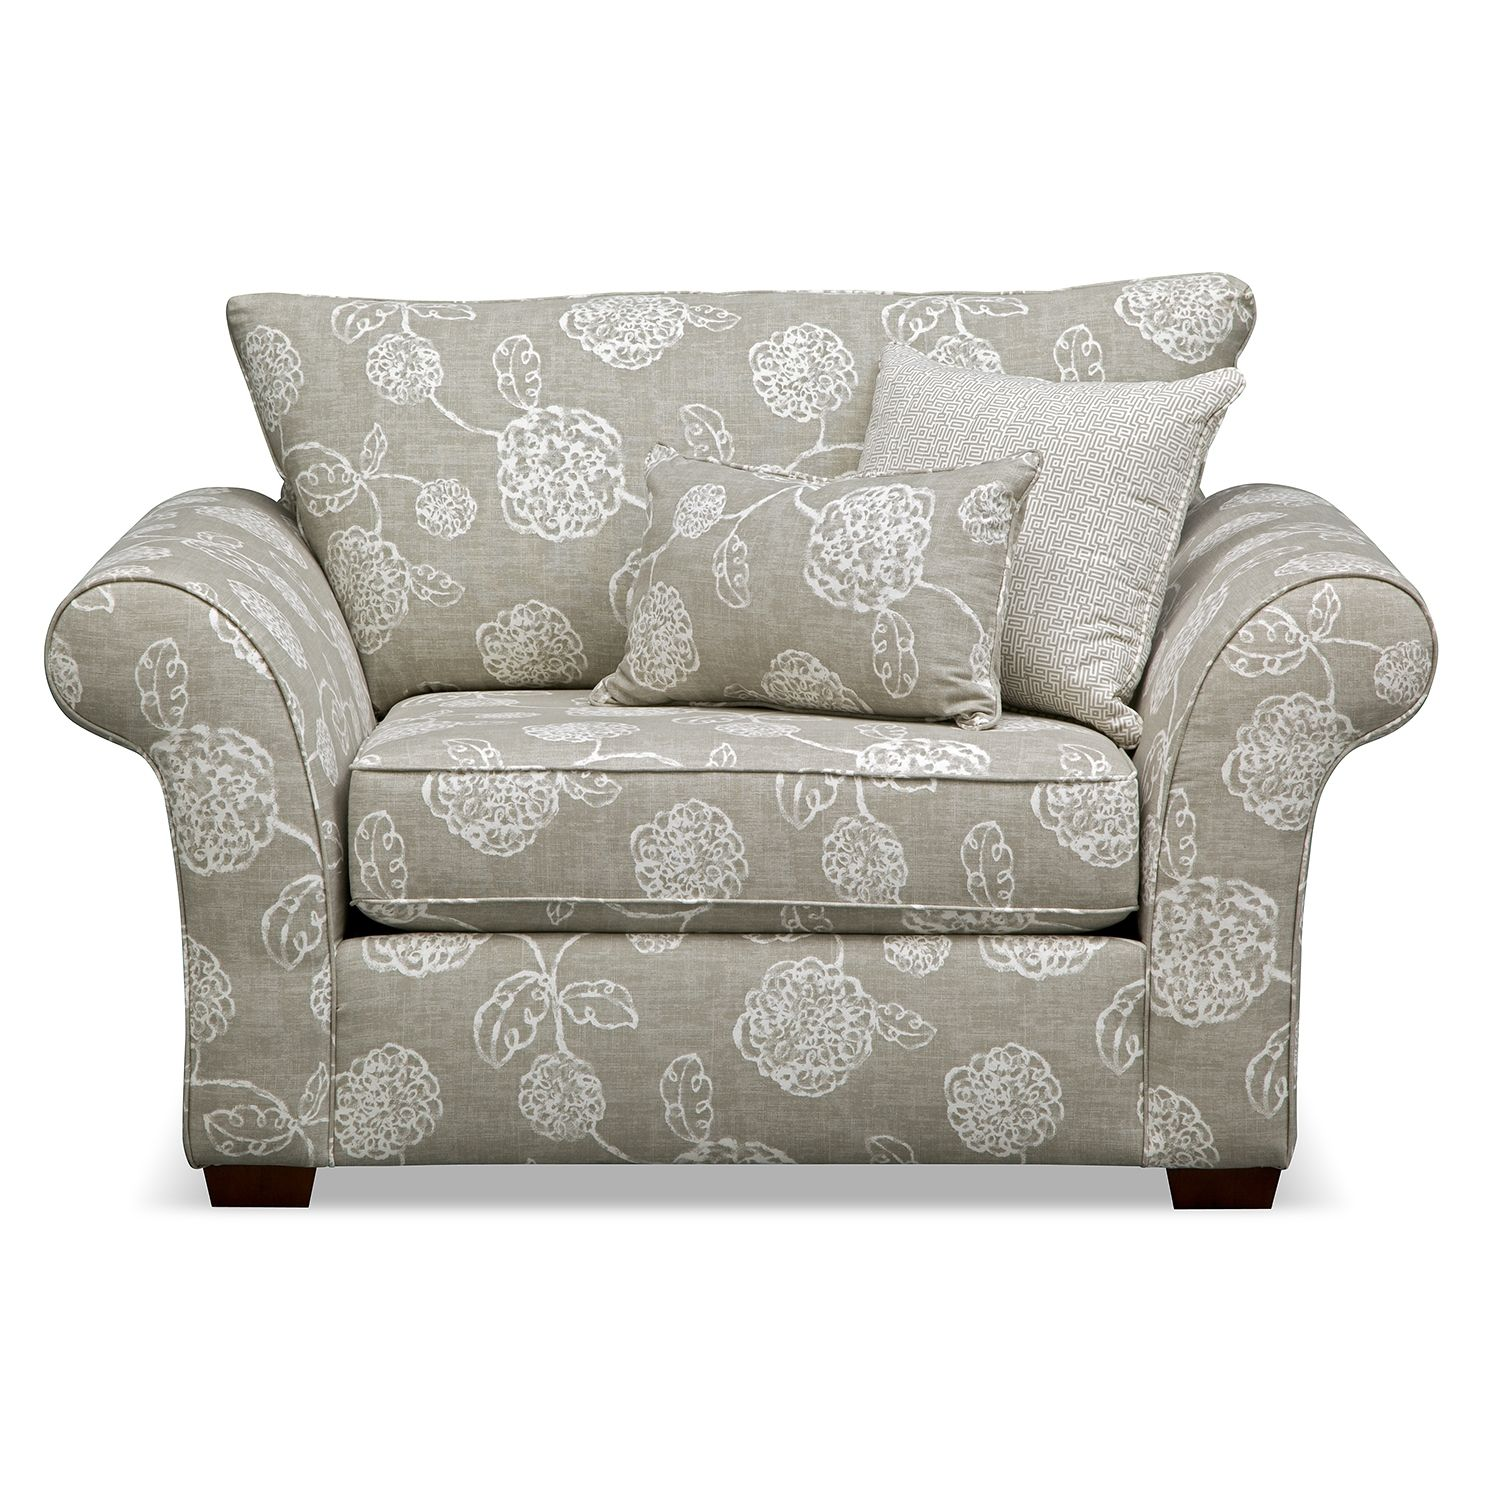 Awesome Living Room Furniture   Adele Chair And A Half